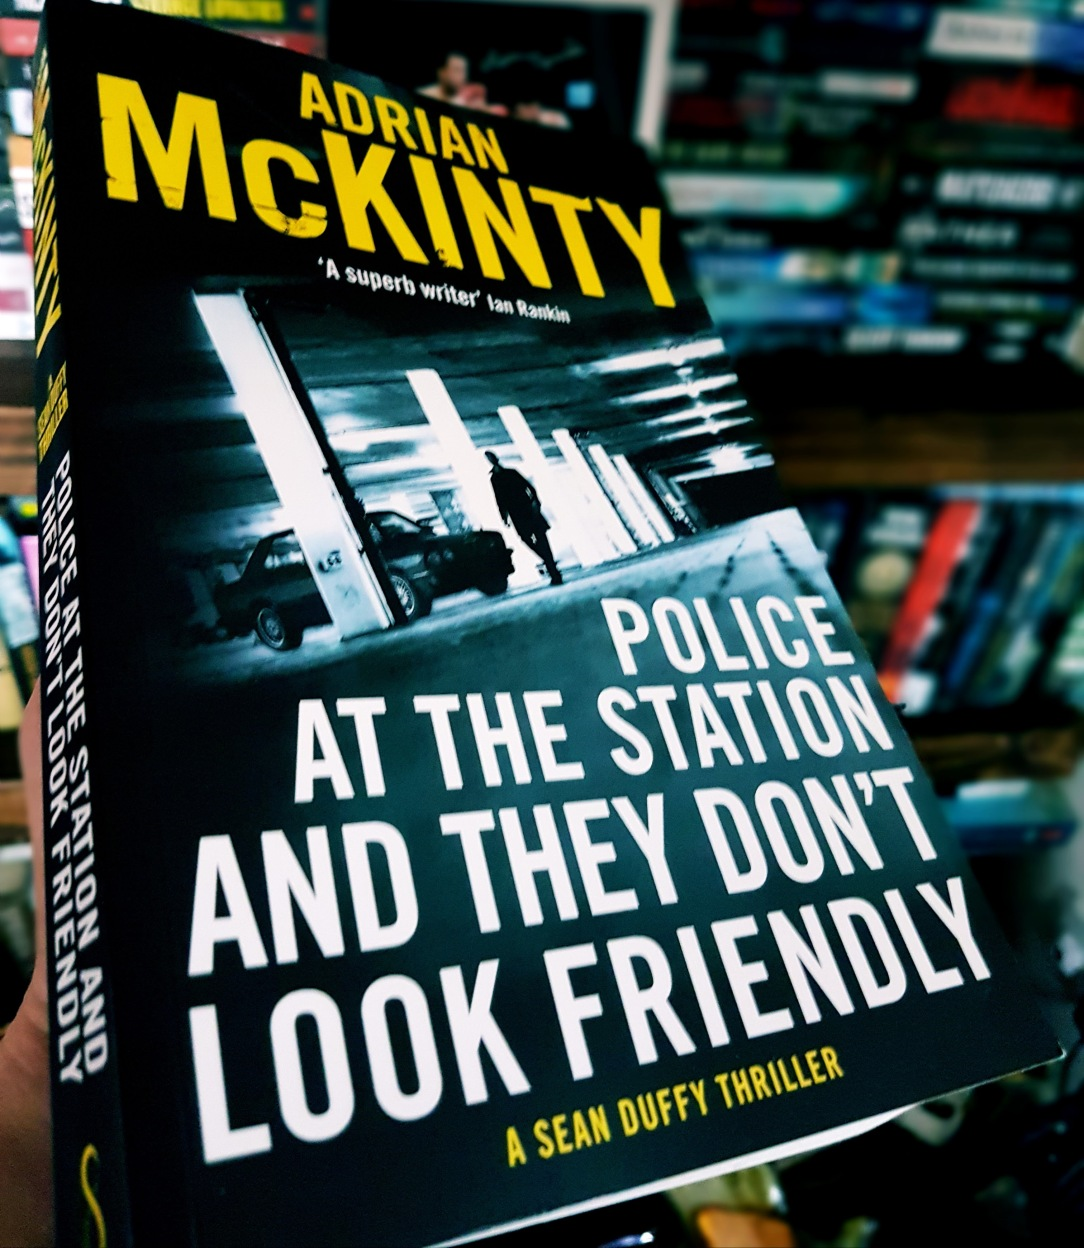 adrian mckinty – The Online Home Of Author Rob Parker